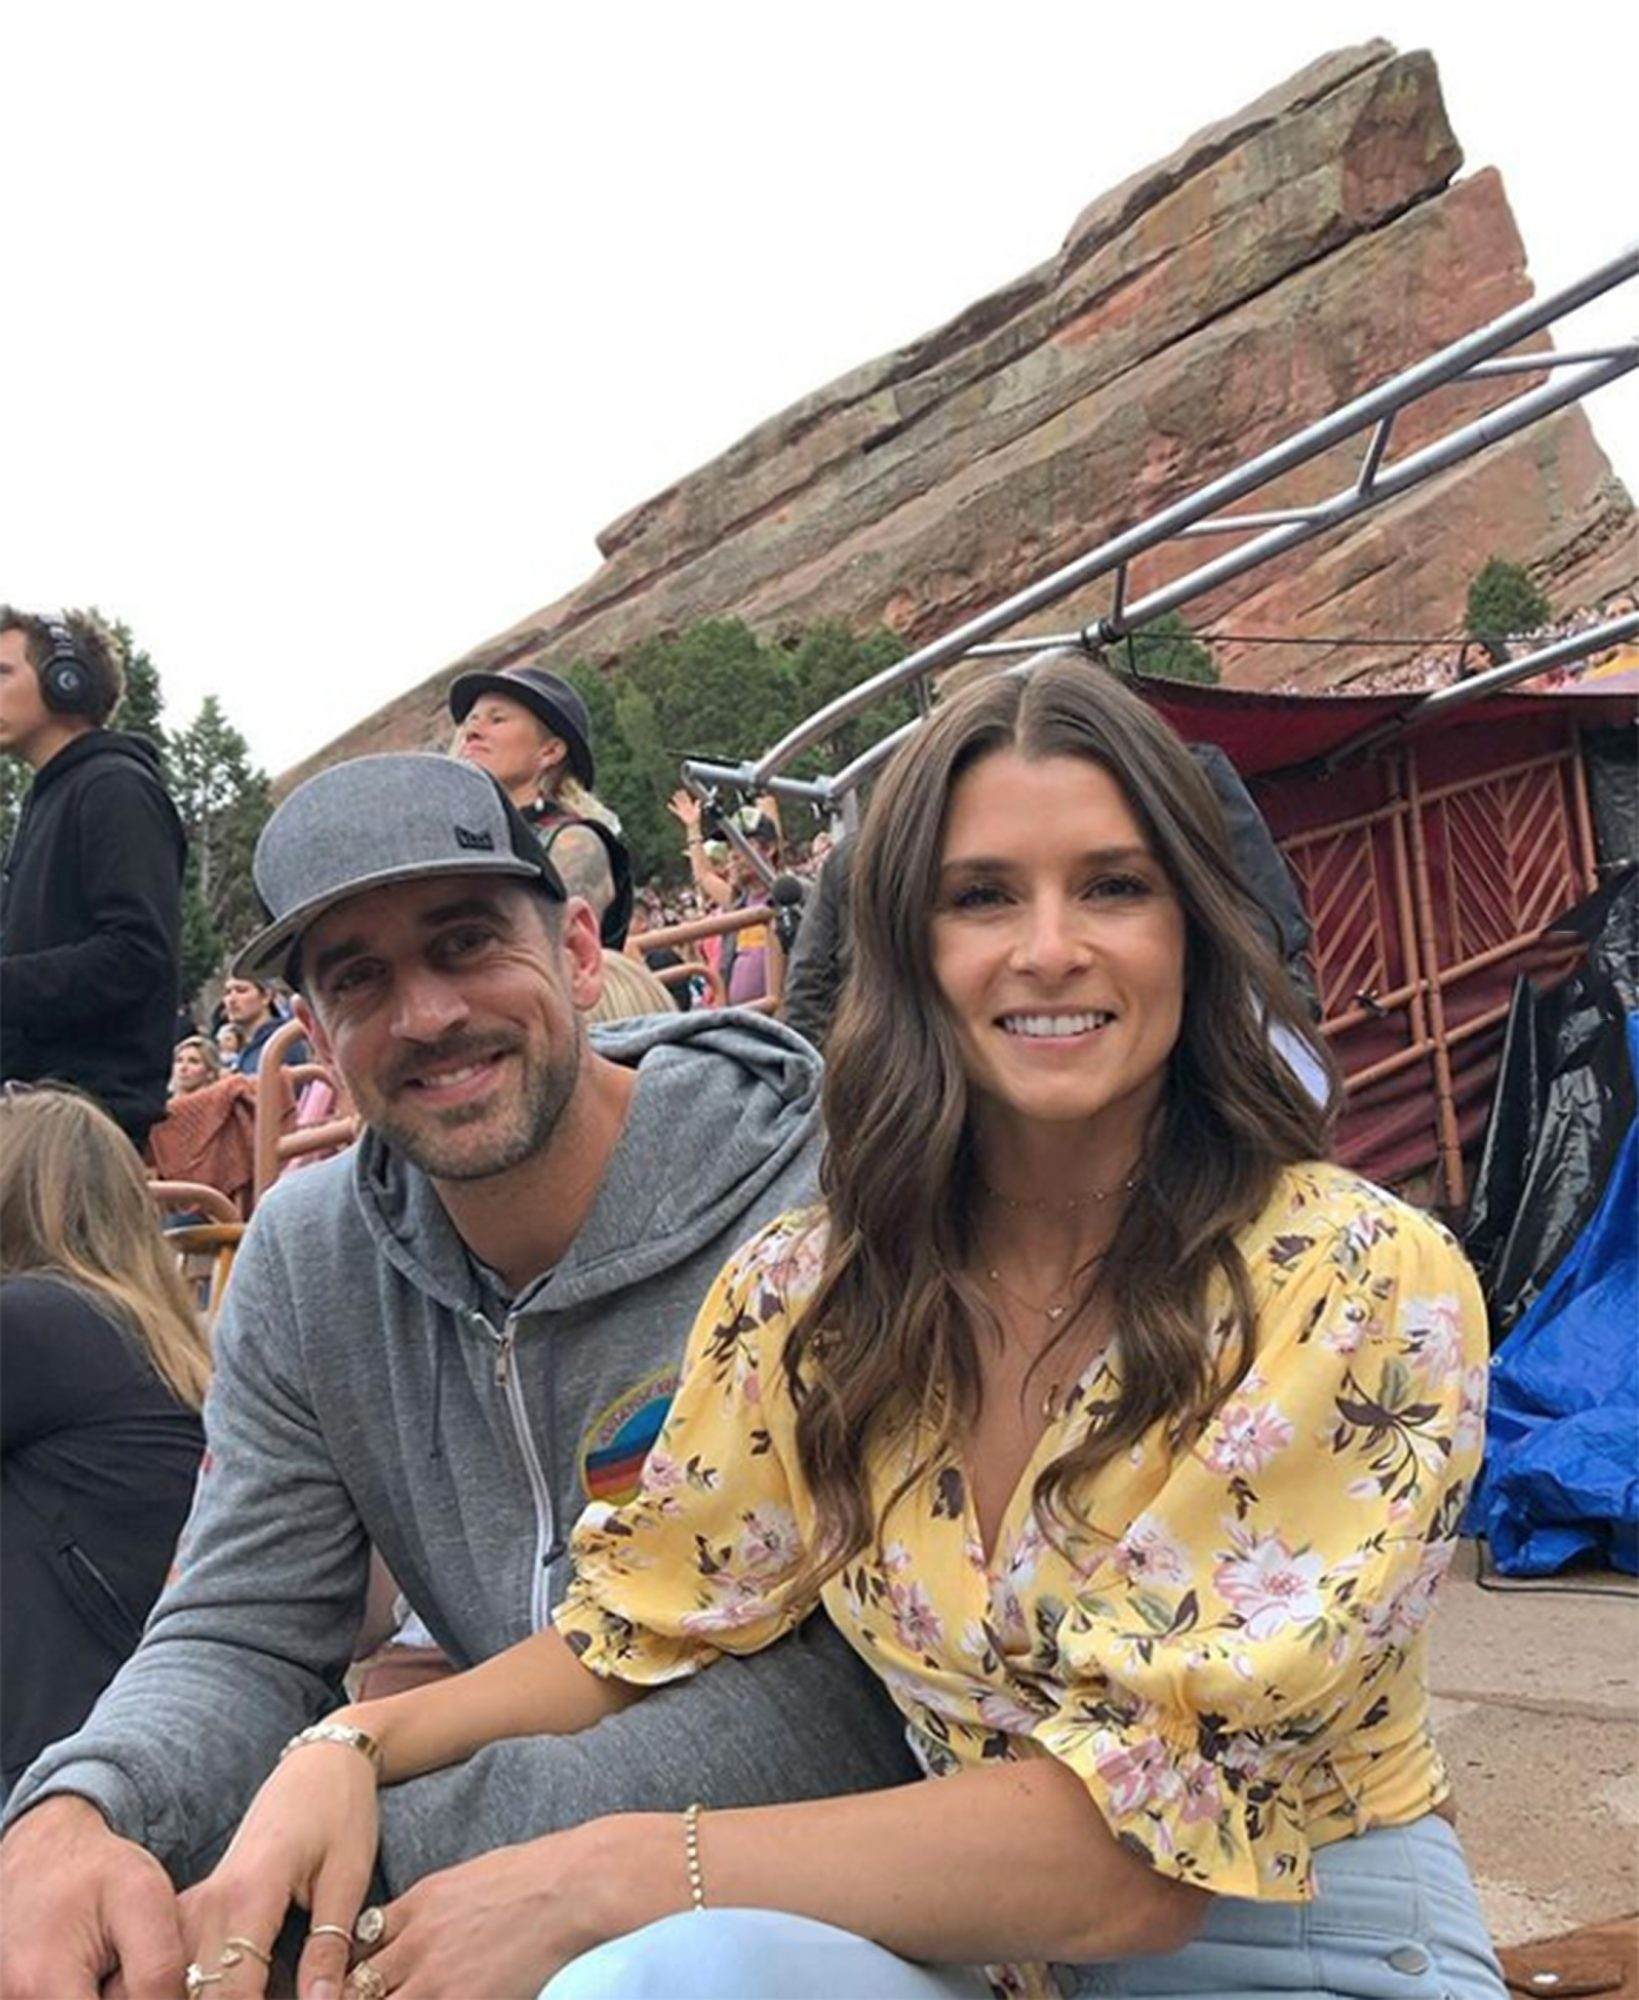 """Rodgers andPatrick called it quits, a rep for the former racecar driver confirmed to PEOPLE on July 16.                             The two firstconfirmedthey were a couple in January 2018.                             Patrick stopped following the Green Bay Packers quarterback on Instagram. The latest photos of Rodgers currently on Patrick's page are fromFebruaryandApril.                             Just weeks into thecoronavirus outbreak, Patrick opened up about quarantining with Rodgers, who she called """"extremely attractive"""" and """"super intelligent.""""                             """"If you like a partner who is extremely attractive, super intelligent, very thoughtful, patient (lord knows I can be stubborn), loves to travel, is open minded, is into growing in this life, and can ball. Ya, it's pretty amazing,"""" she said during an Instagram Q&Ain April."""